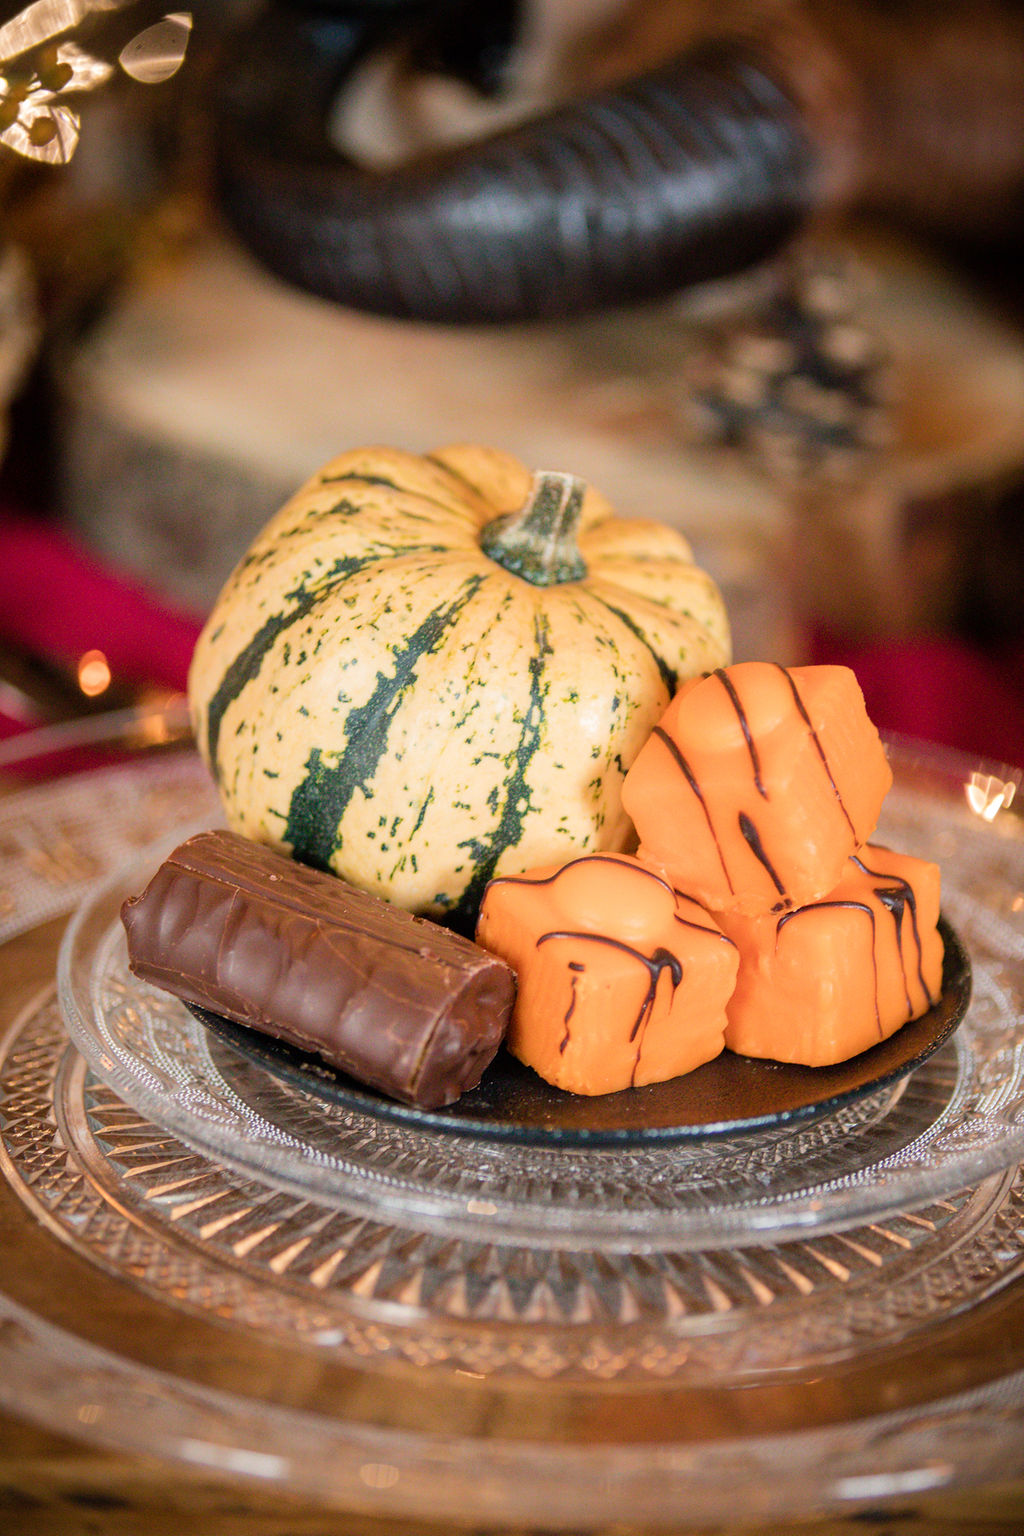 halloween wedding inspiration - pumpkin wedding - autumn wedding desert table